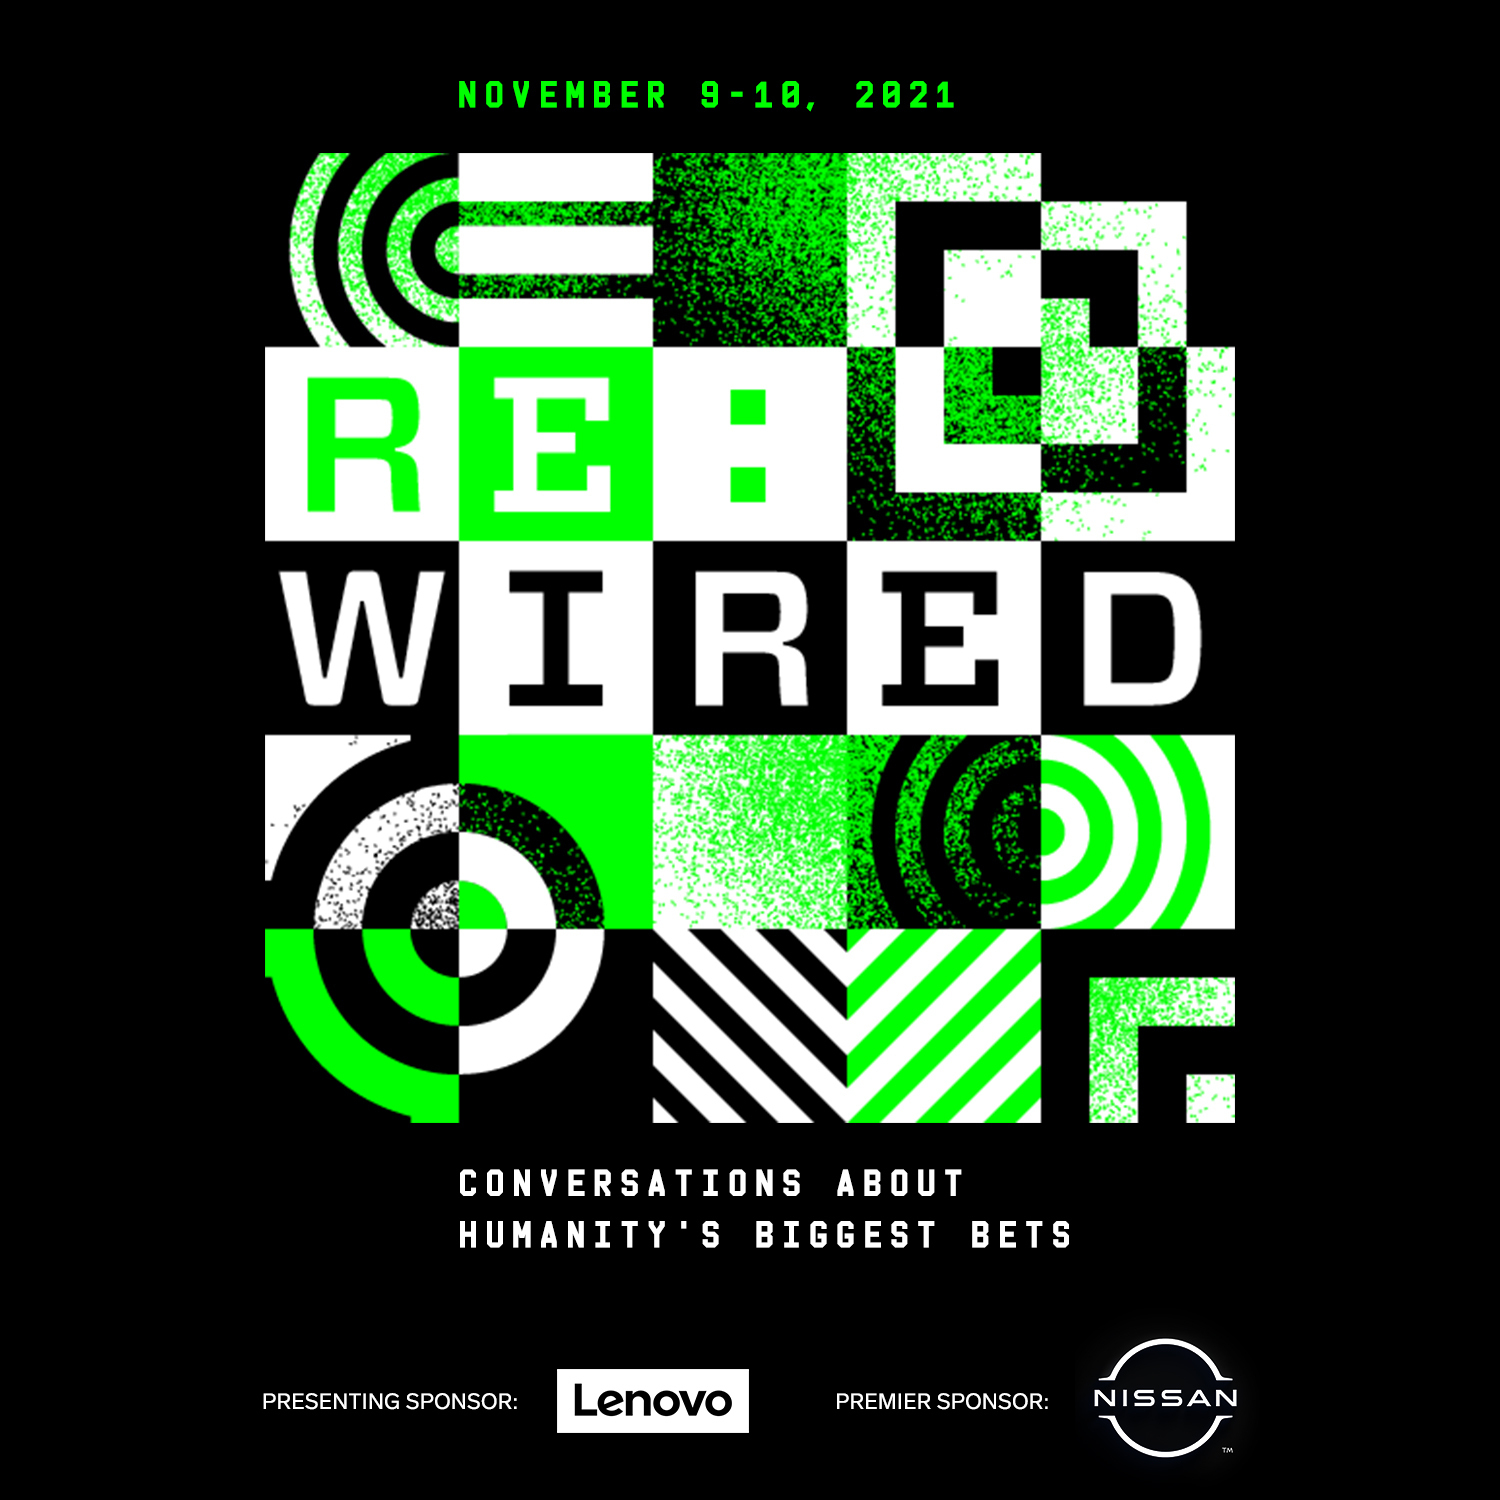 Join us at the RE:WIRED conference